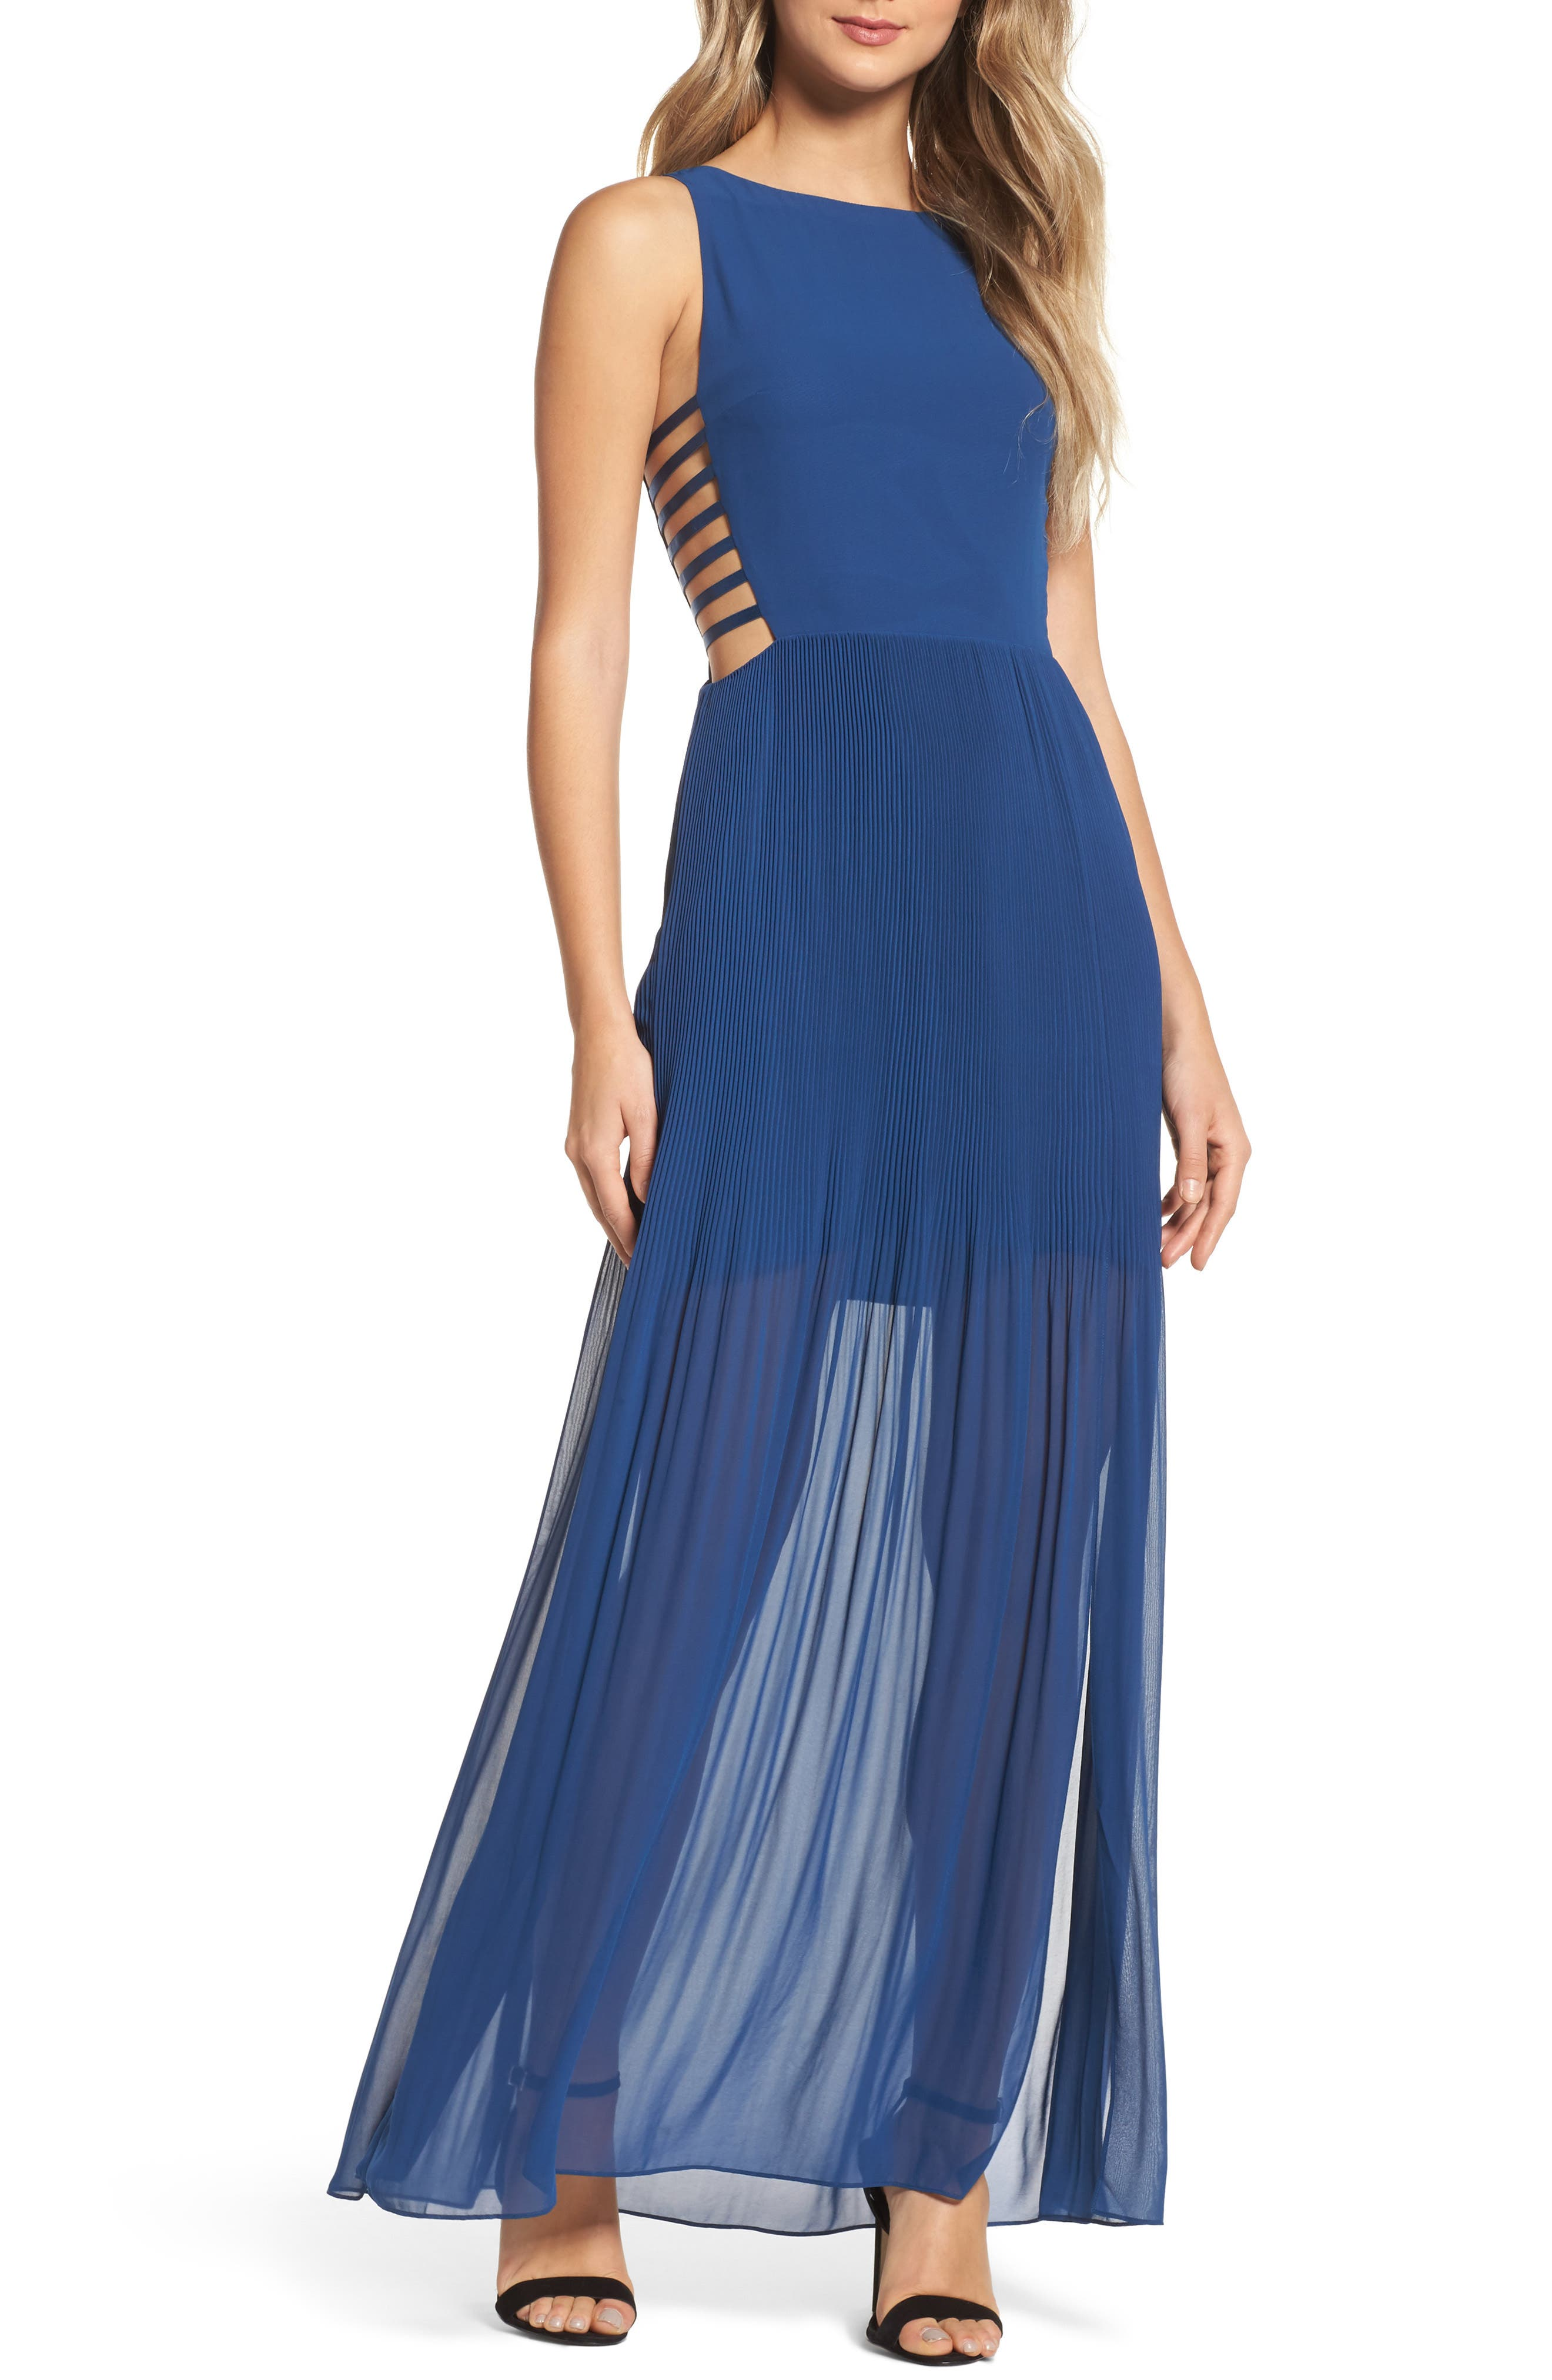 Sunset Blvd Maxi Dress,                         Main,                         color, French Blue